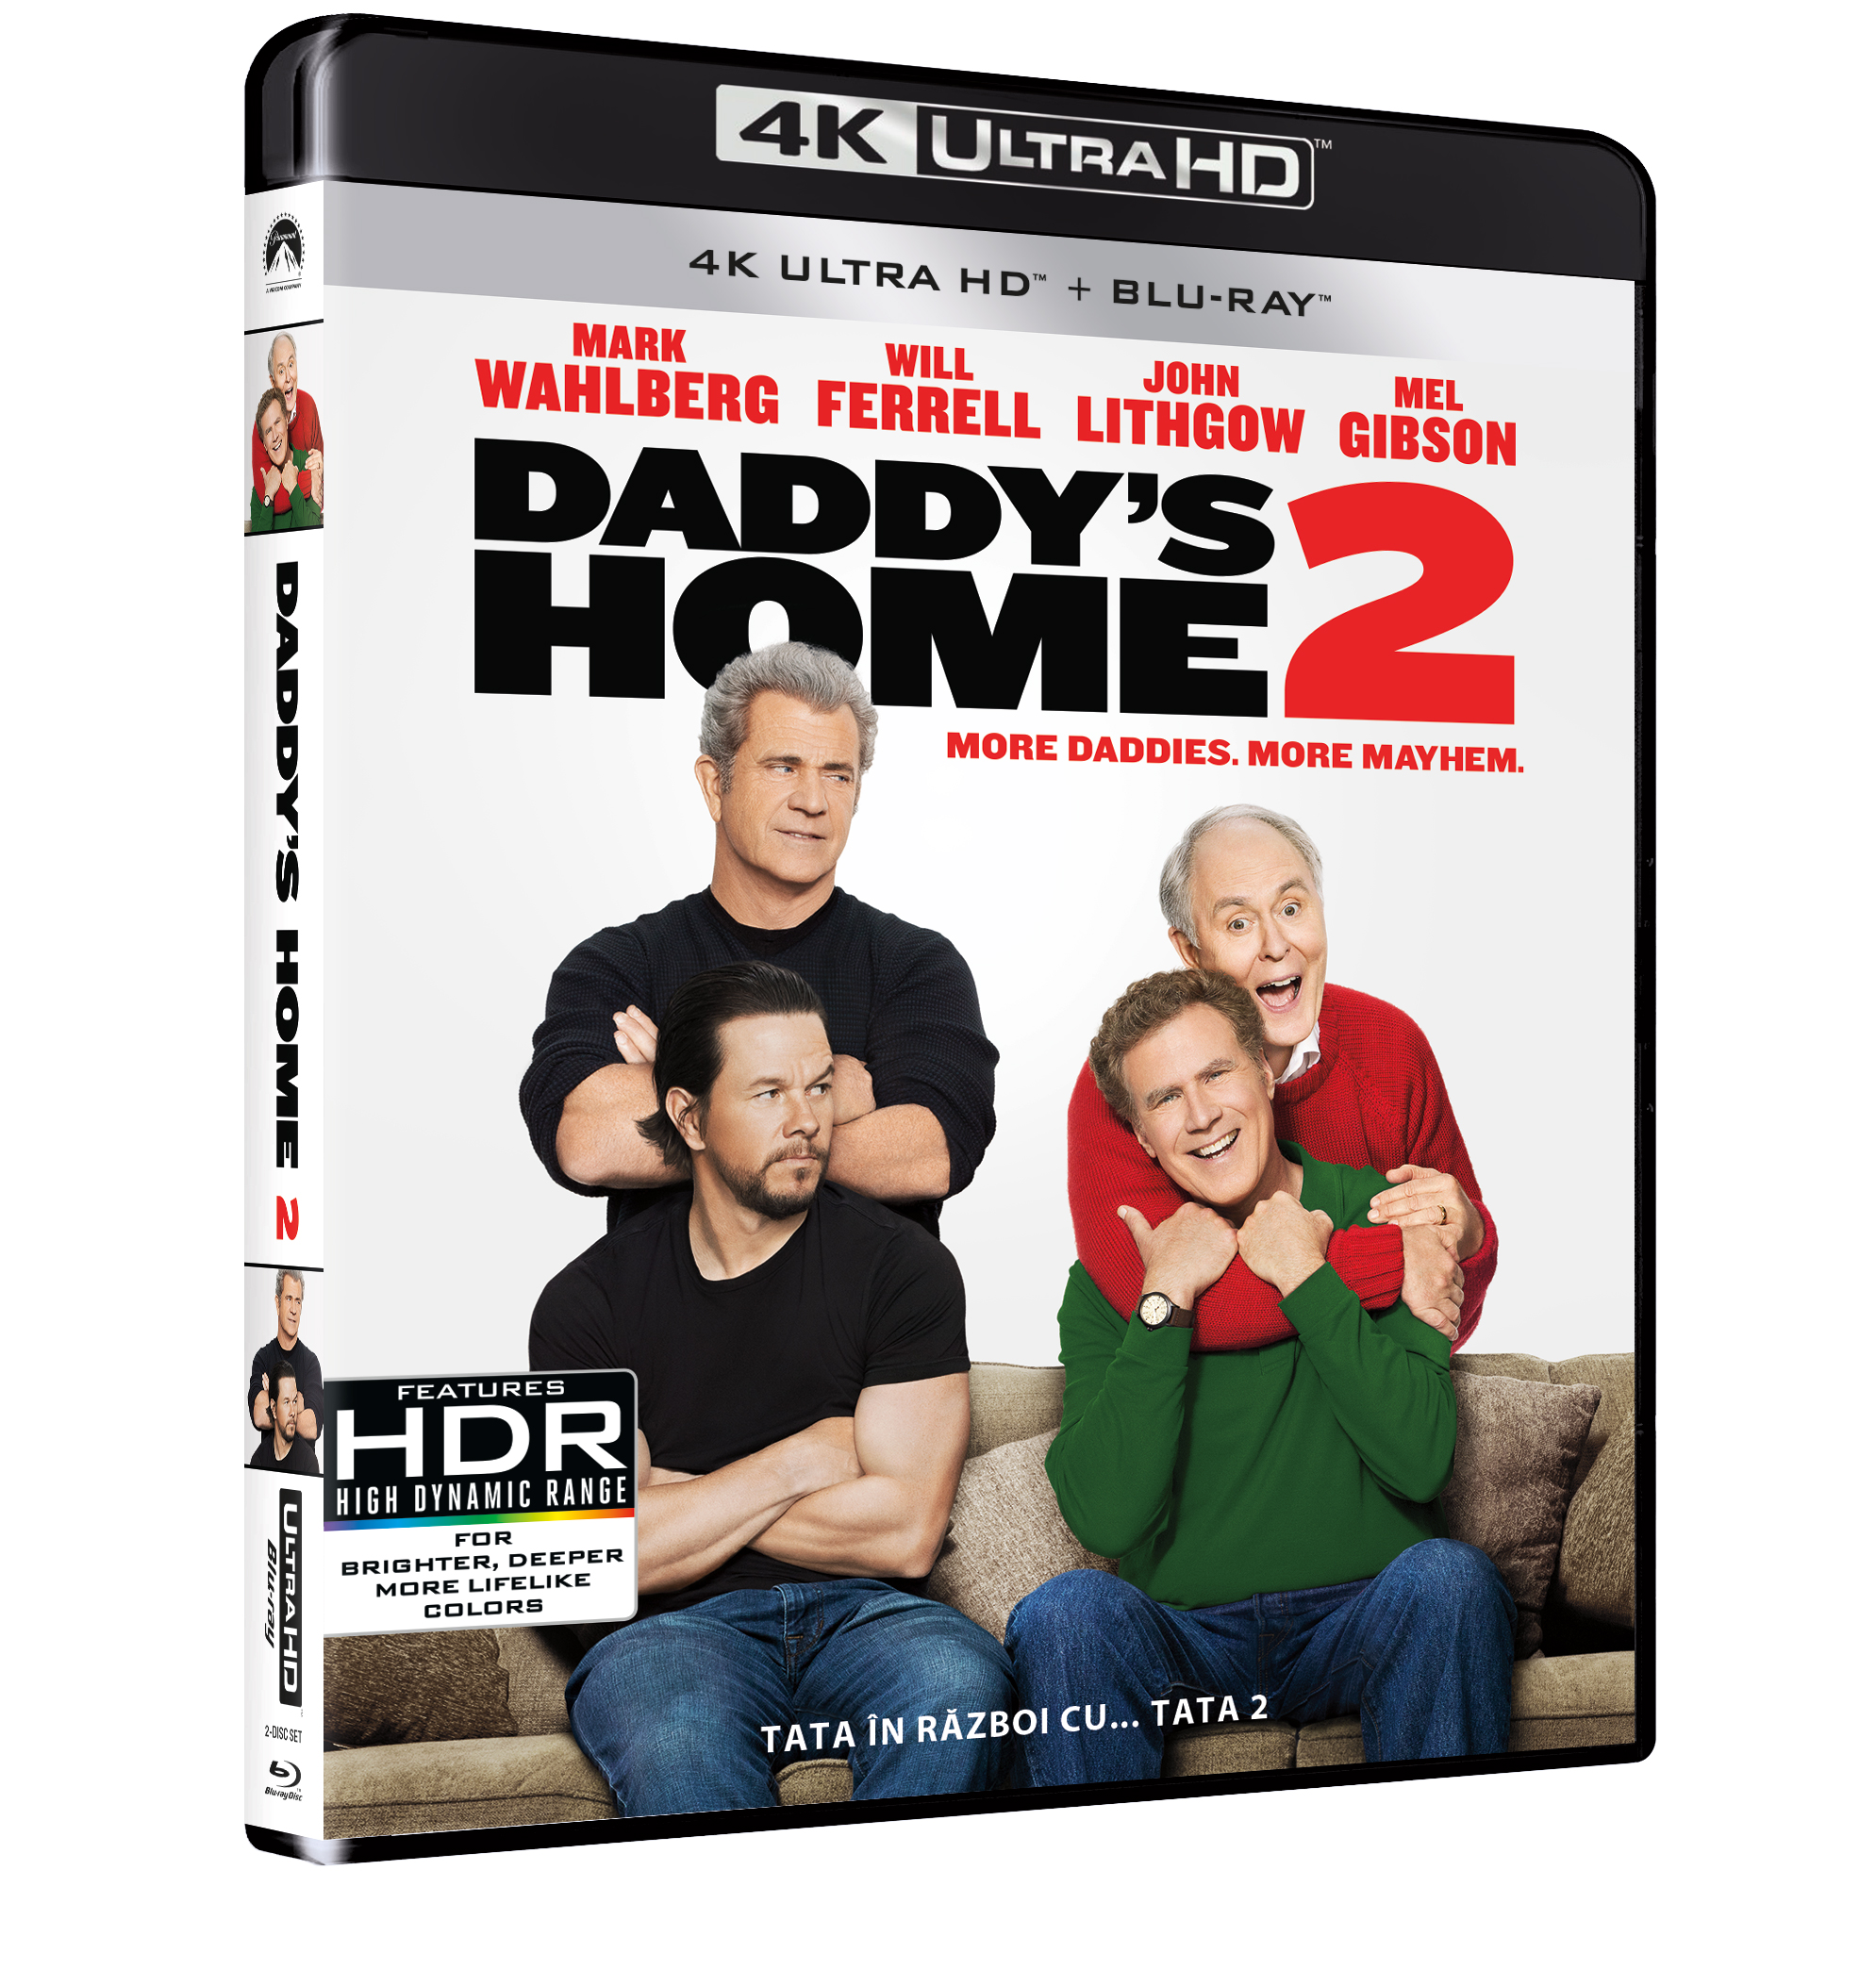 Tata in razboi cu... tata 2 (Blu Ray Disc) UHD / Daddy's Home 2